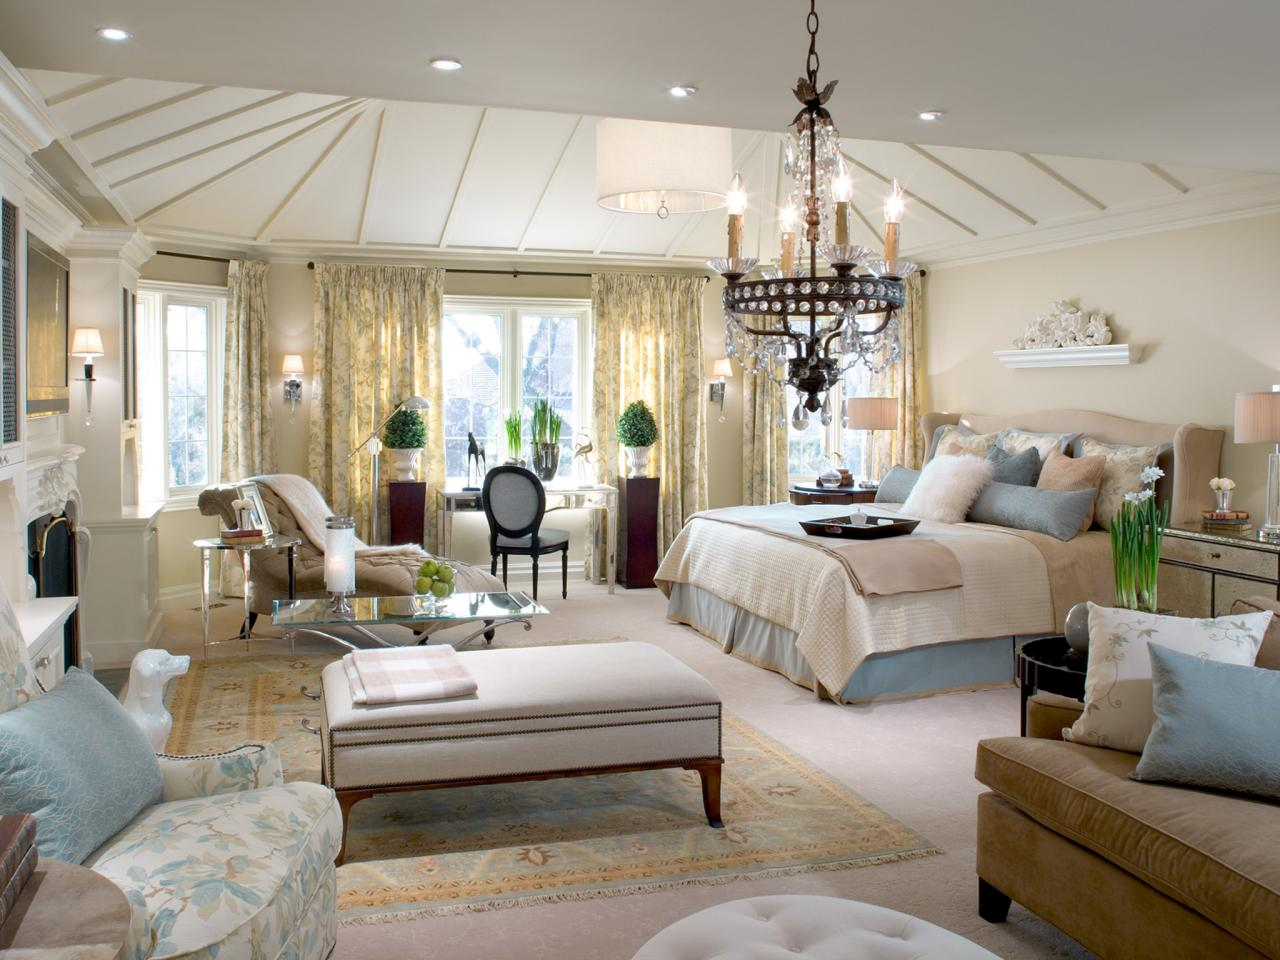 Bedroom Carpet Ideas Pictures Options amp Ideas HGTV